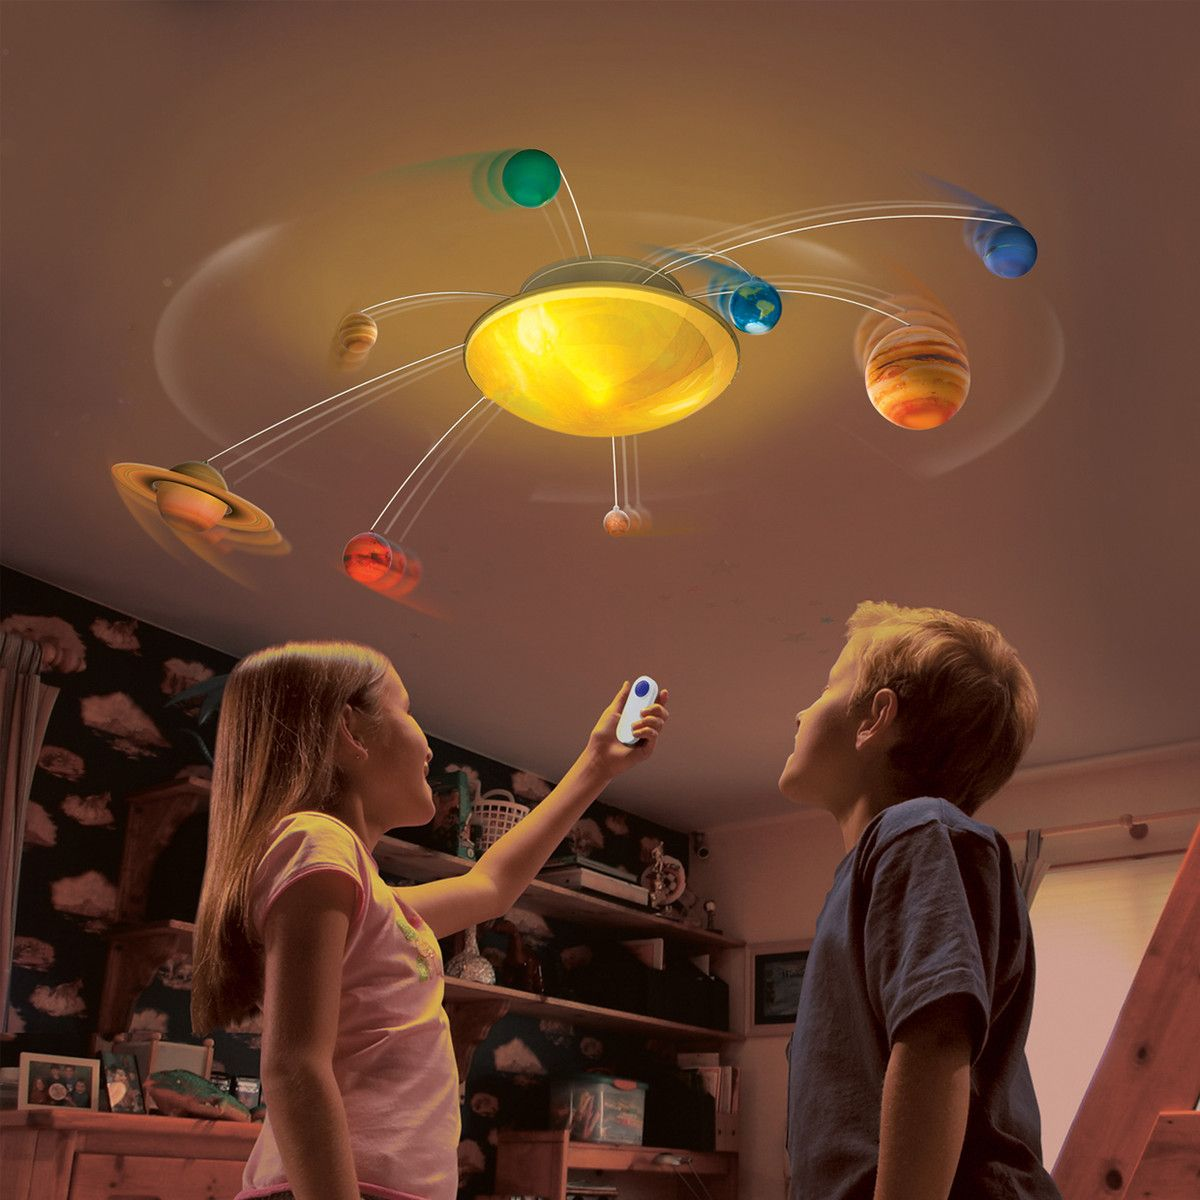 Solar system in my room auto shut off after 20 minutes of uncle milton solar system in my room toys games barizo aloadofball Images